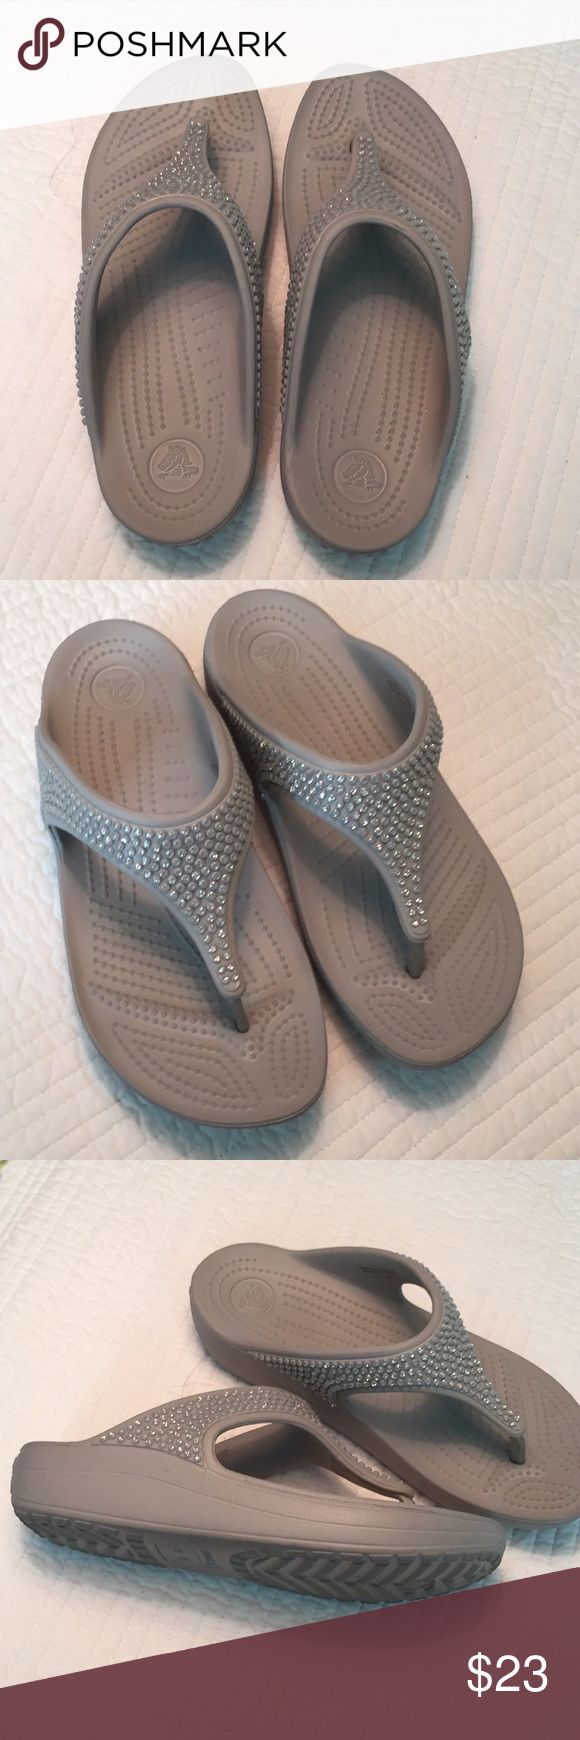 Crocs 7 gray bling flip flops Light walking wear but maybe a handful of Times. Thank you for looking. Smoke free home. CROCS Shoes Sandals